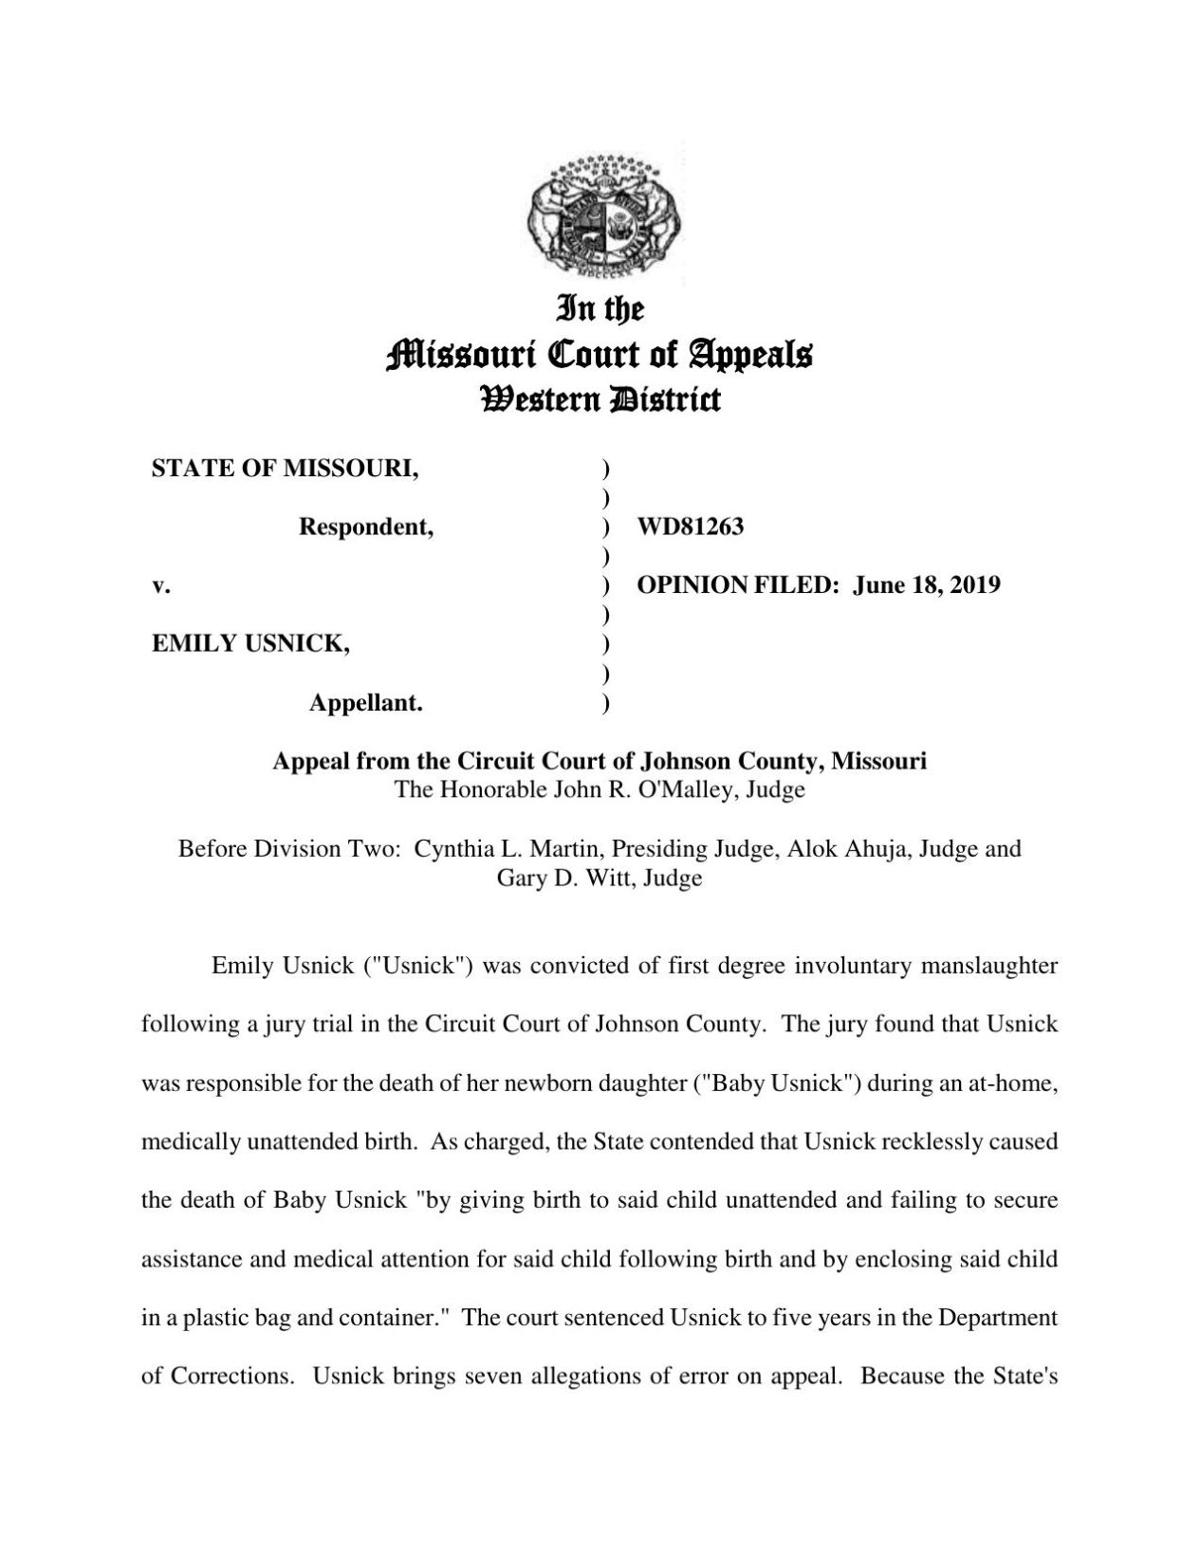 Missouri Western District Court Of Appeals - Usnick Opinion